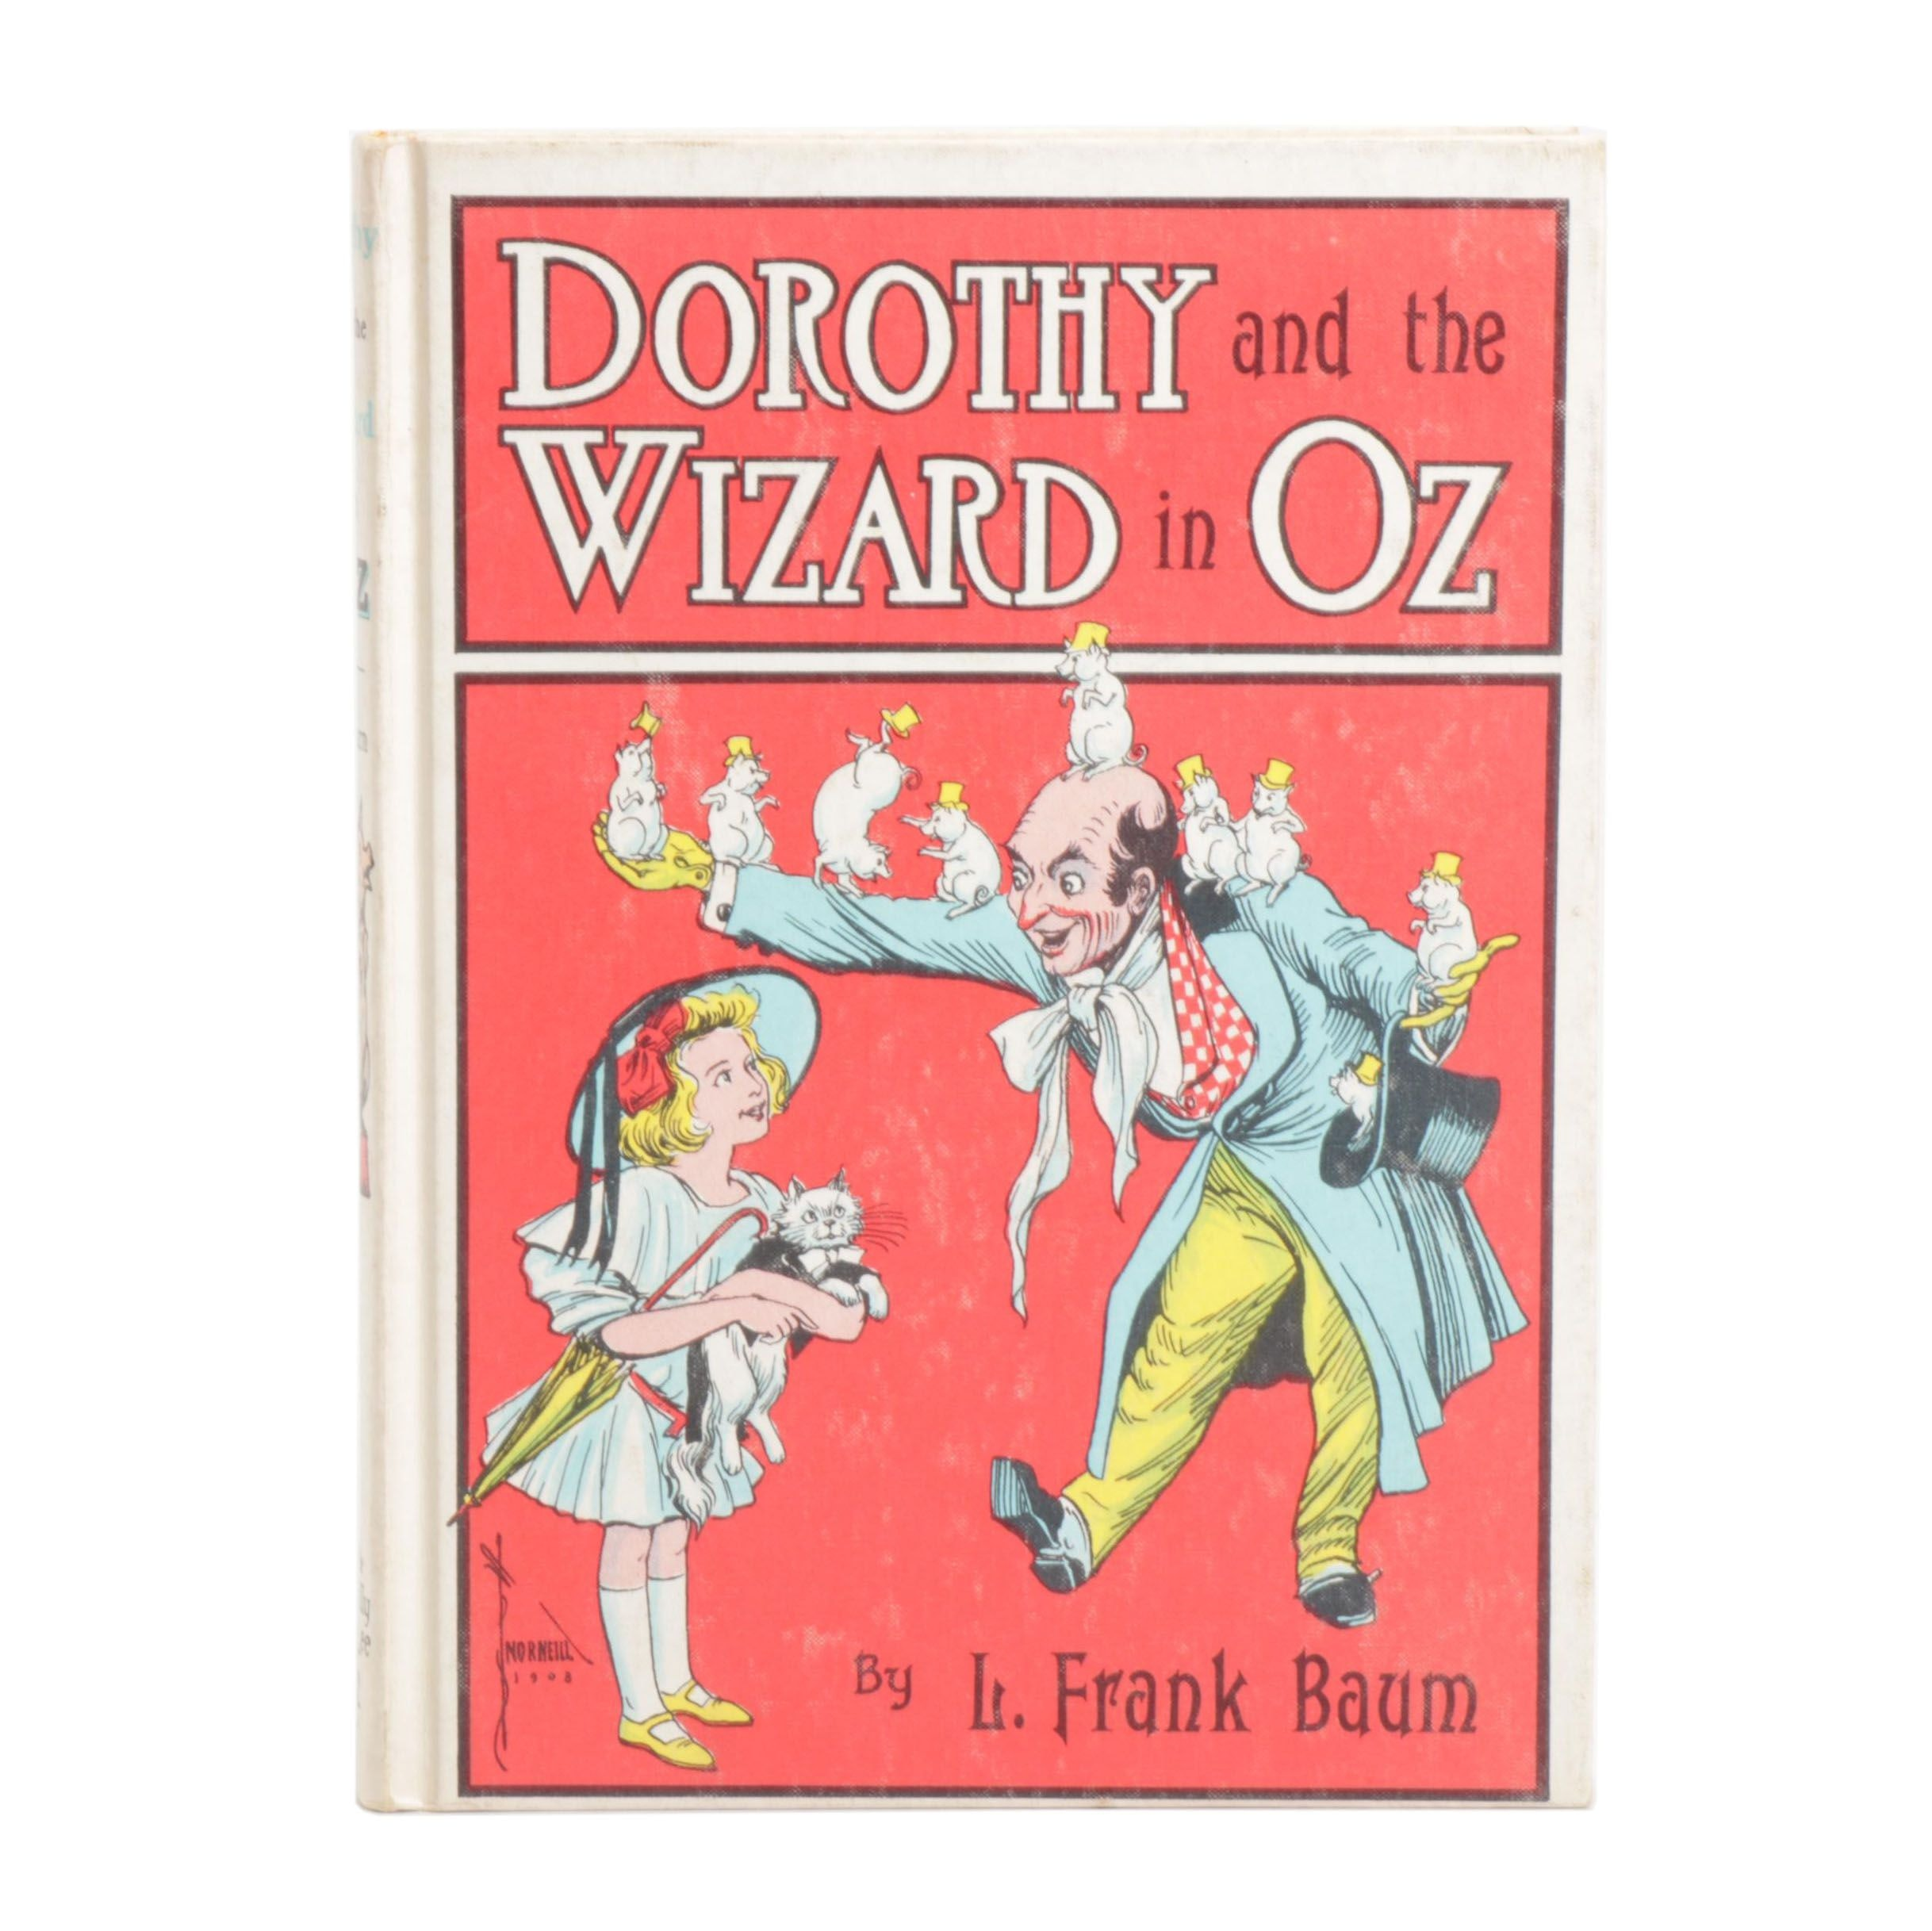 """1908 First Edition """"Dorothy and the Wizard in Oz"""" by L. Frank Baum"""